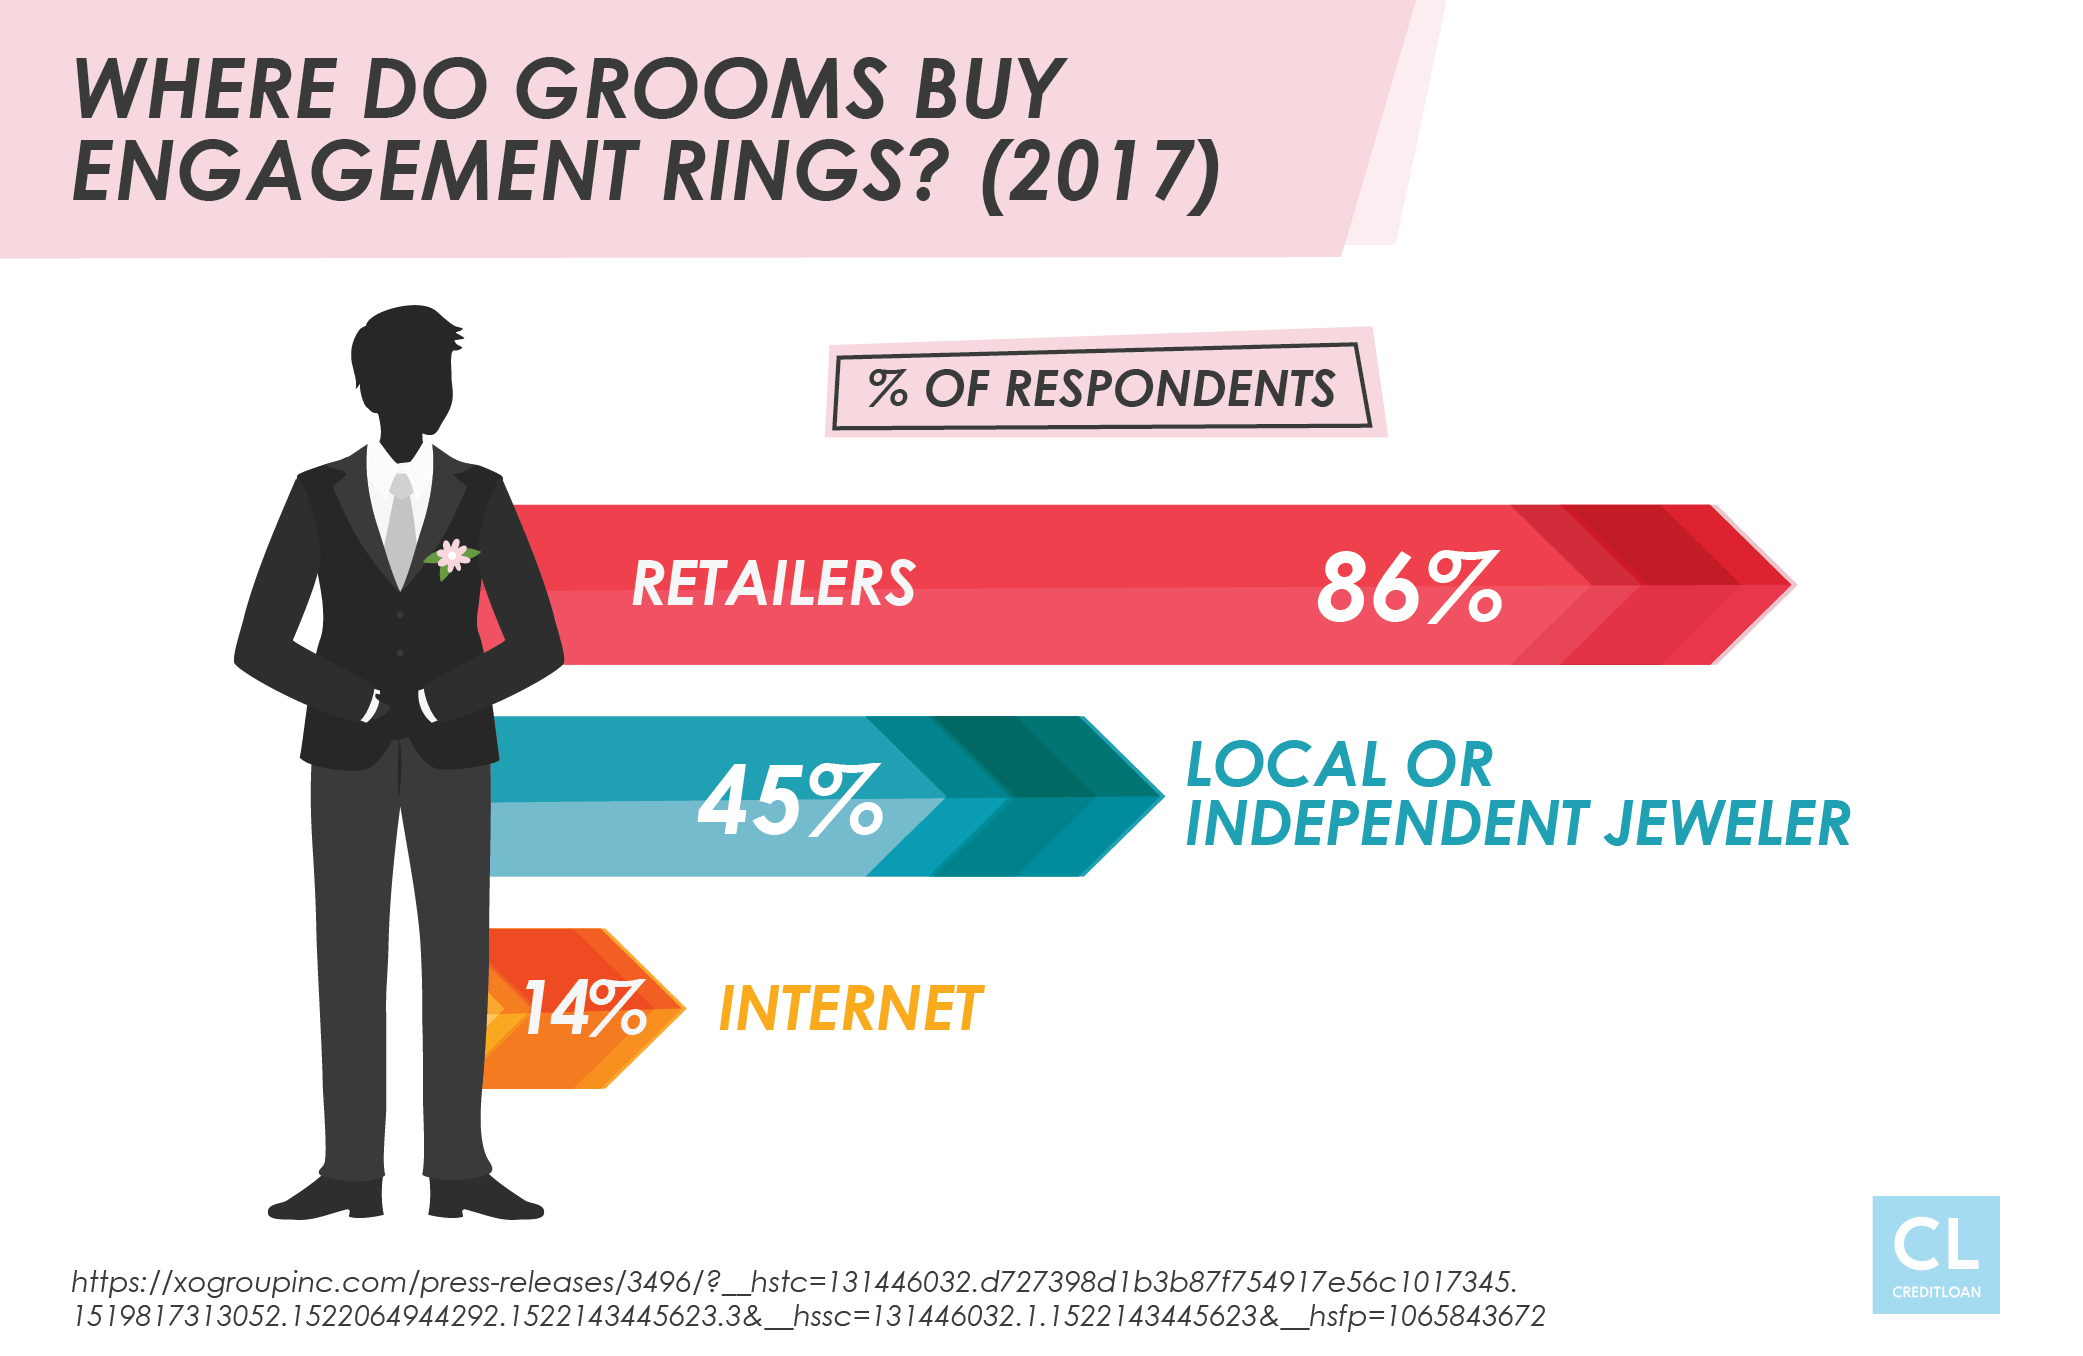 Survey: Where Do Grooms Buy Engagement Rings?